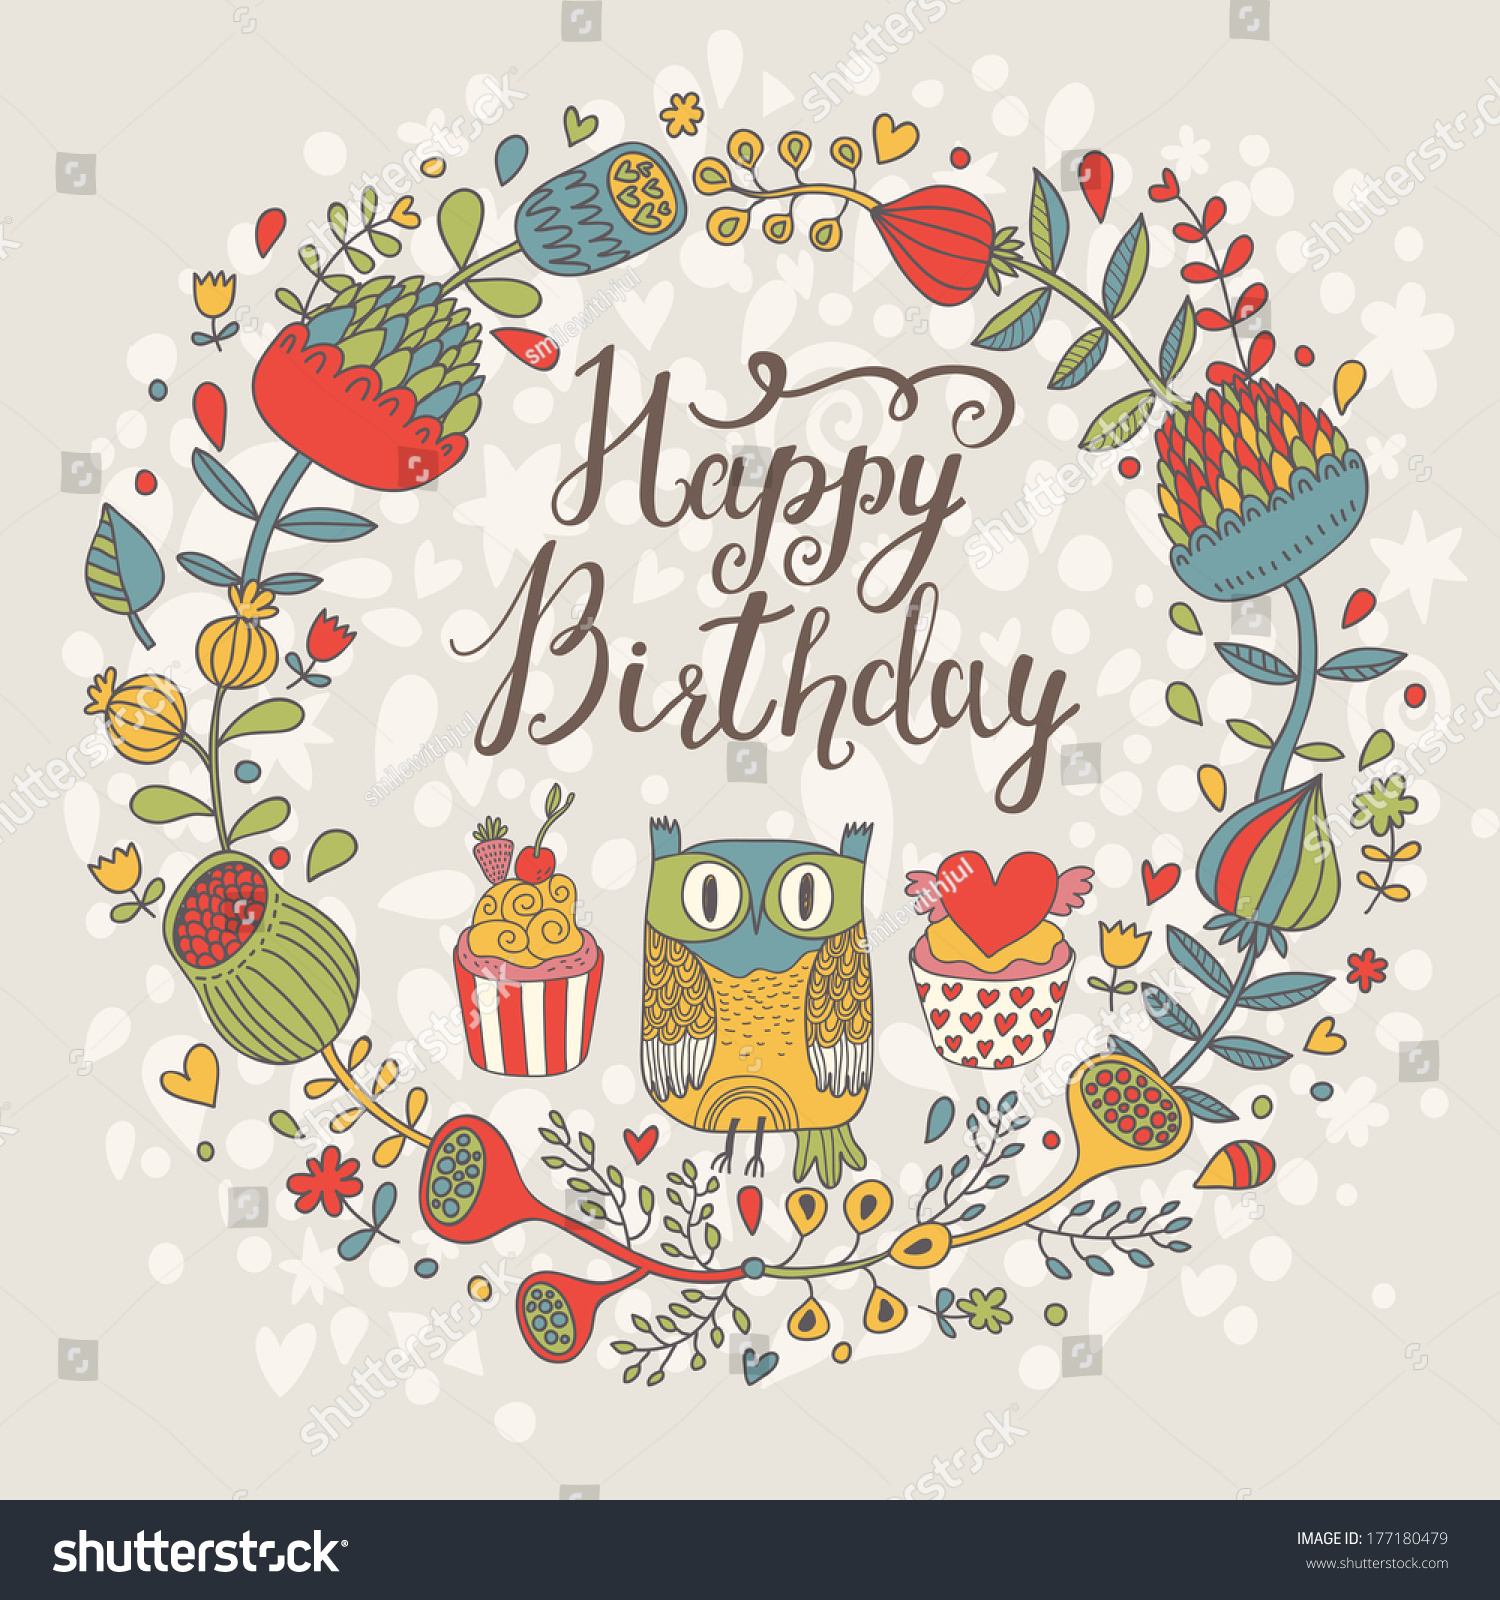 Sweet birthday card craftbnb wedding stationery sale wedding party an owls birthday craftbnb stock vector bright happy birthday card with cute owl tasty cupcakes in bookmarktalkfo Choice Image